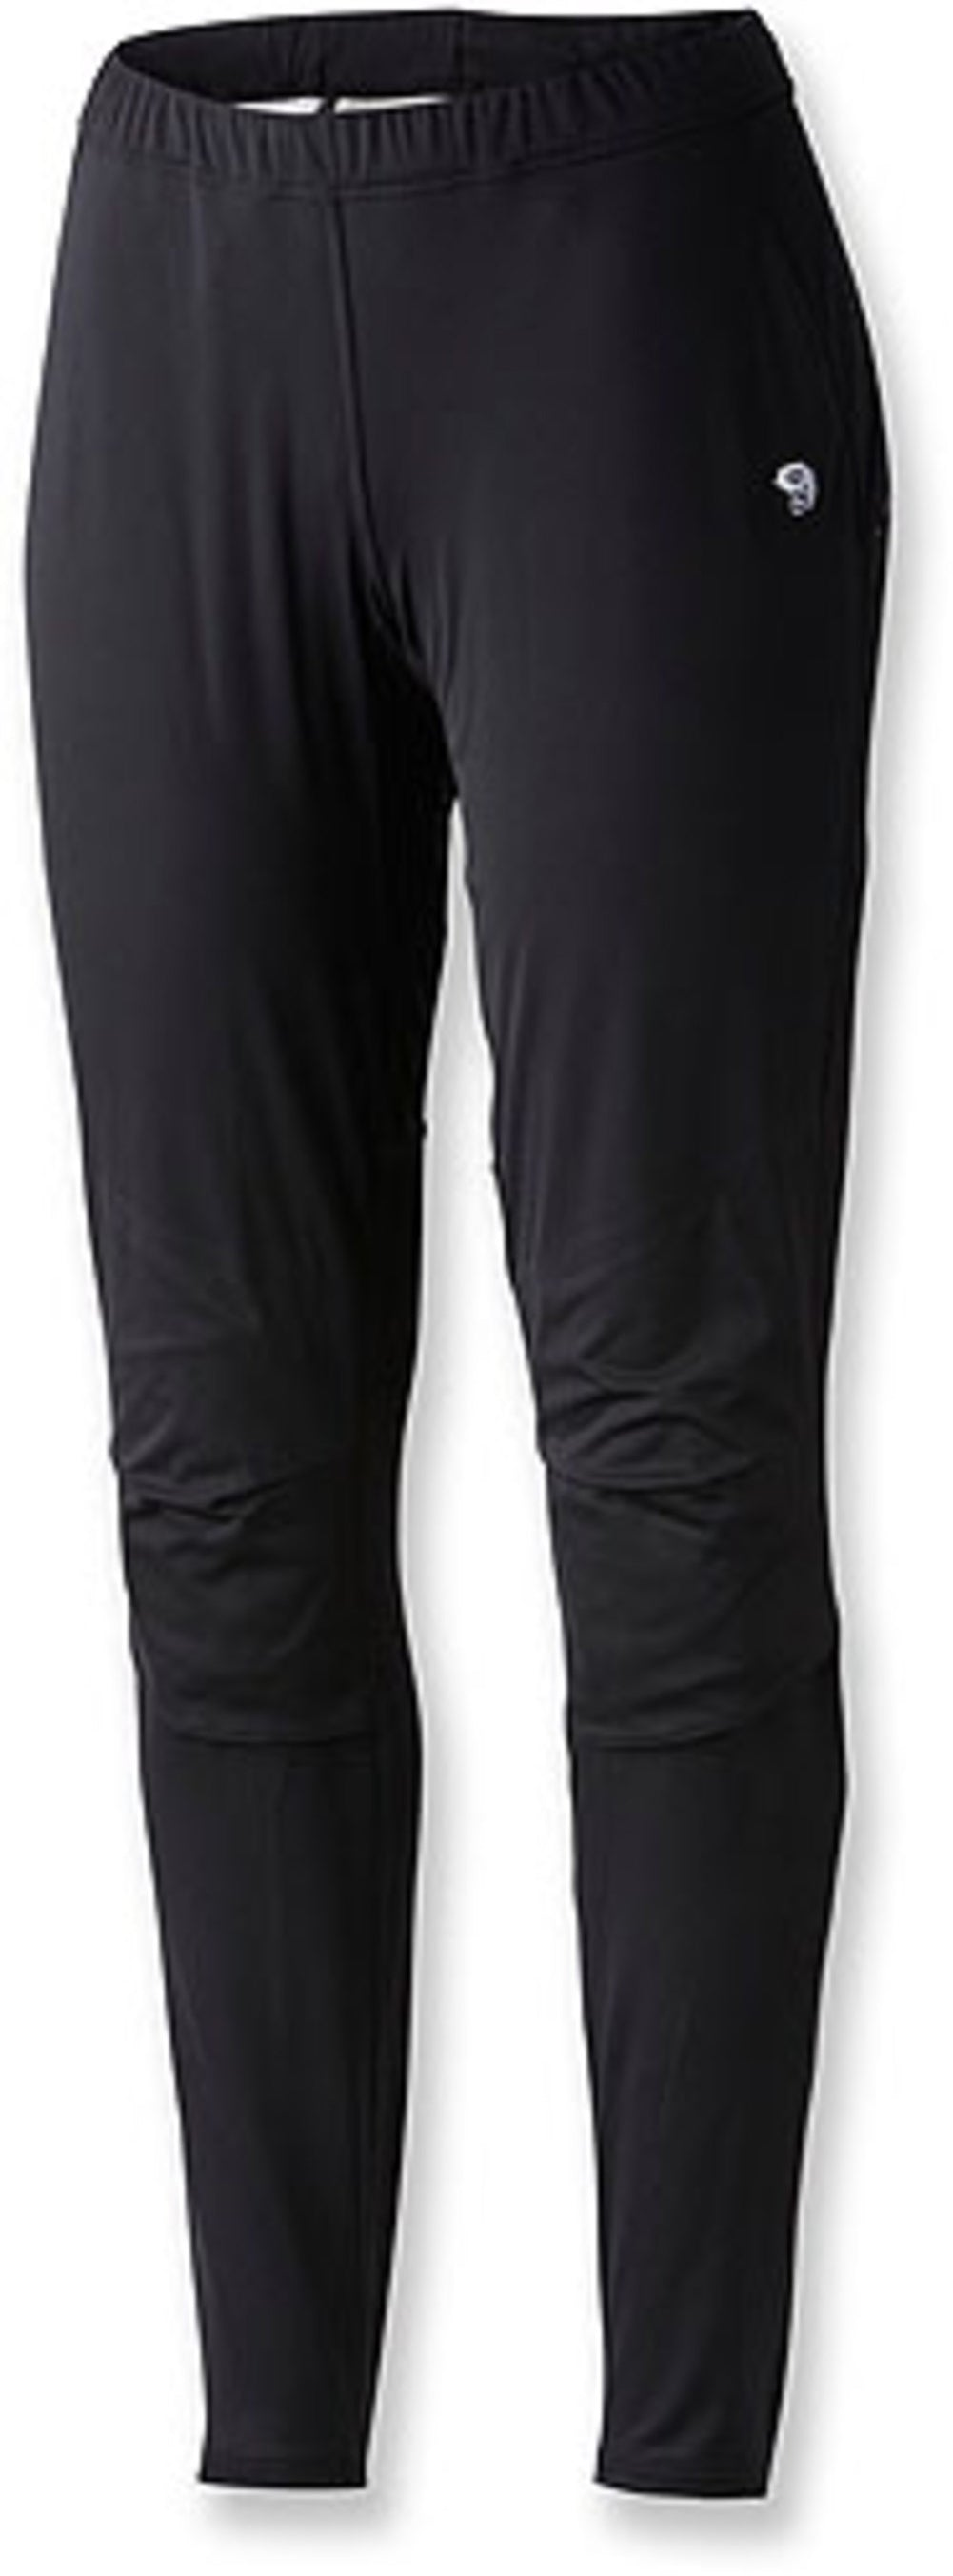 Effusion Power Tight Pants by Mountain Hardwear